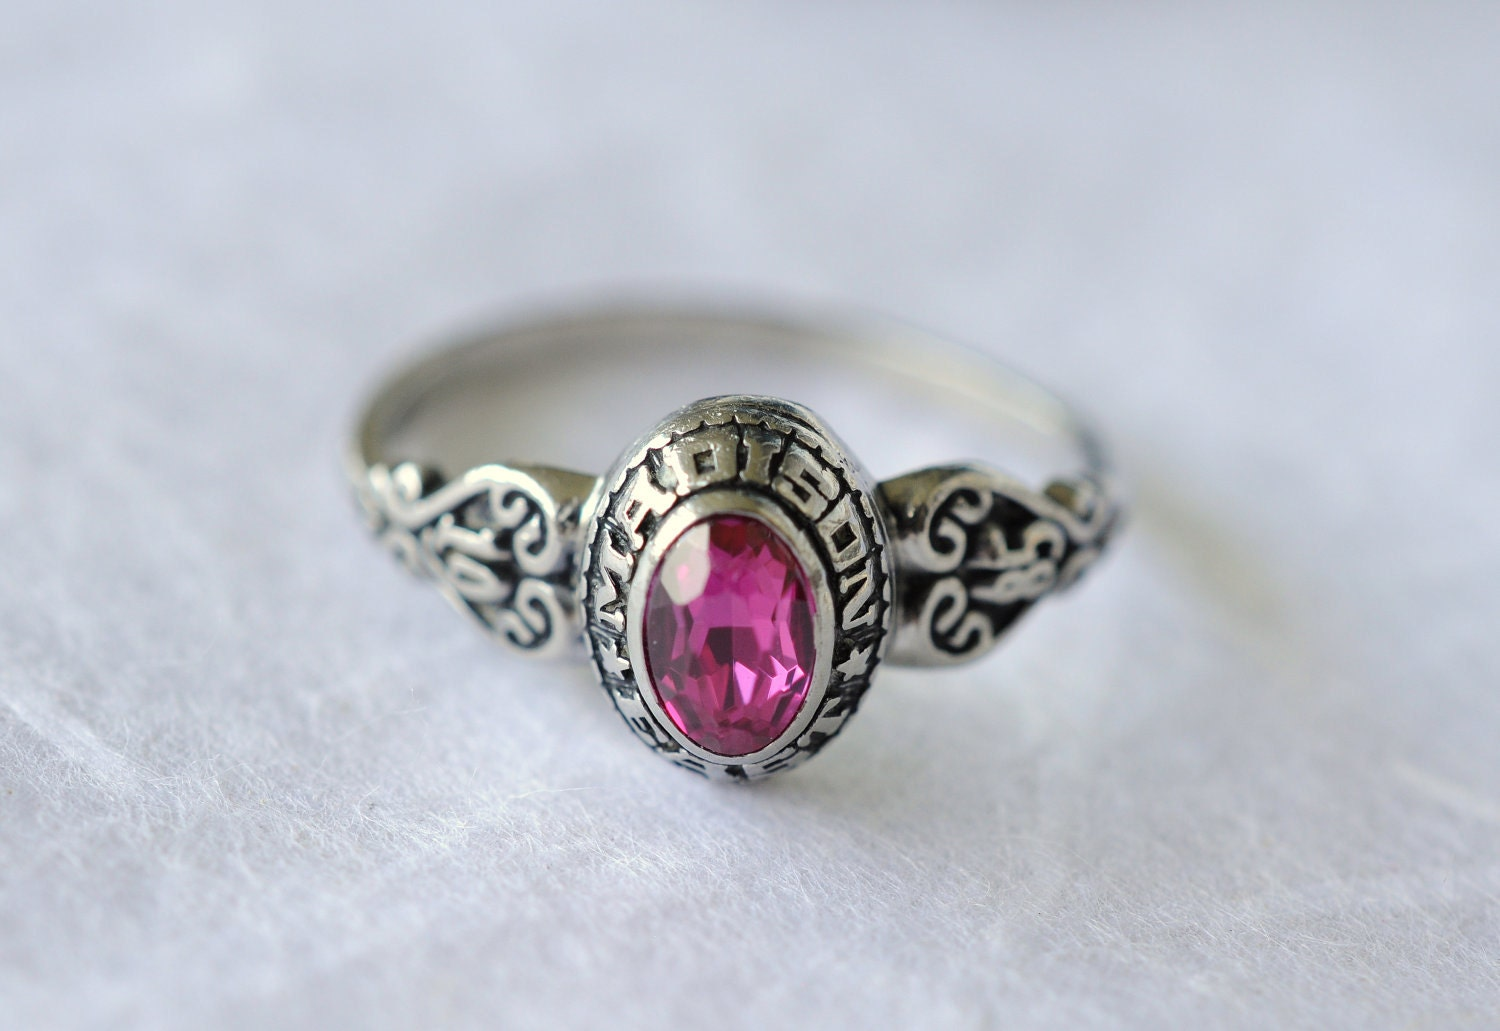 Vintage 1980s Class Ring Jostens Ruby By Erinantiques